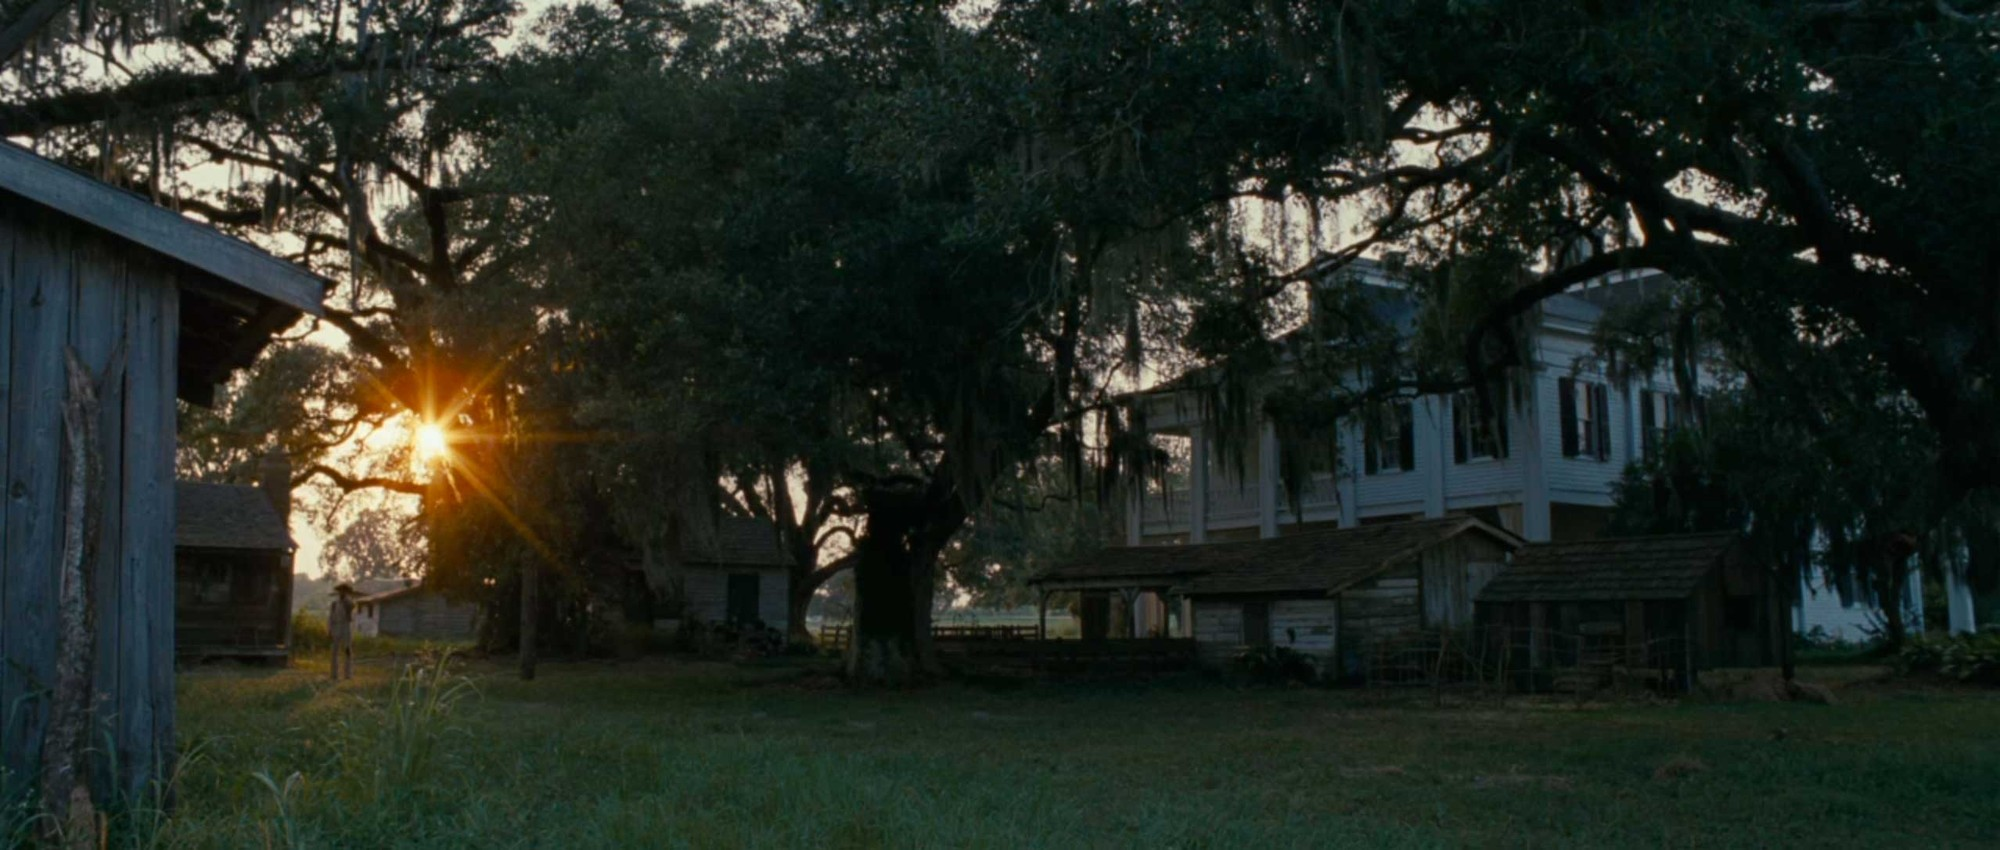 """Steve McQueen: A Master of Architecture in Film, Plantation in """"12 Years a Slave"""". Image Courtesy of indienyc.com"""